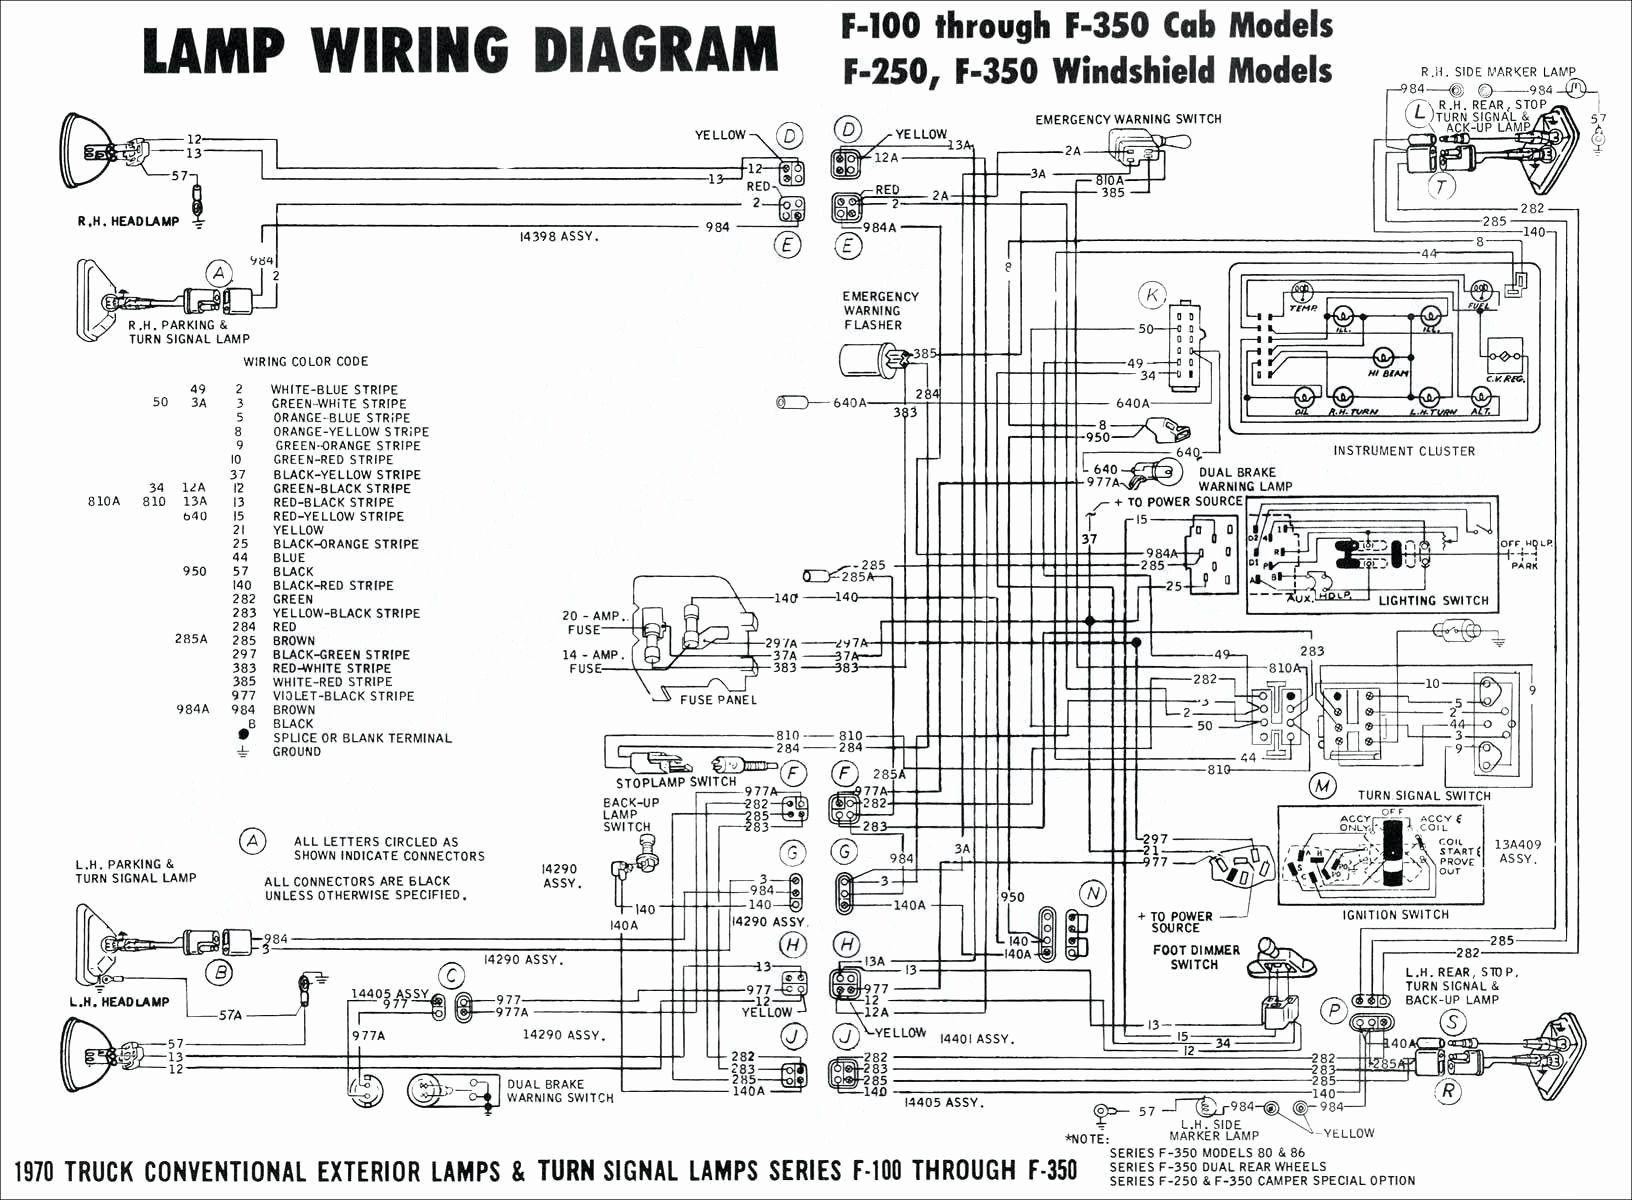 Awesome 2000 S10 Headlight Wiring Diagram in 2020 | Electrical wiring  diagram, Trailer wiring diagram, Diagram | Turn Signal Wiring Diagram For 2002 Chevy S10 Pick Up |  | Pinterest